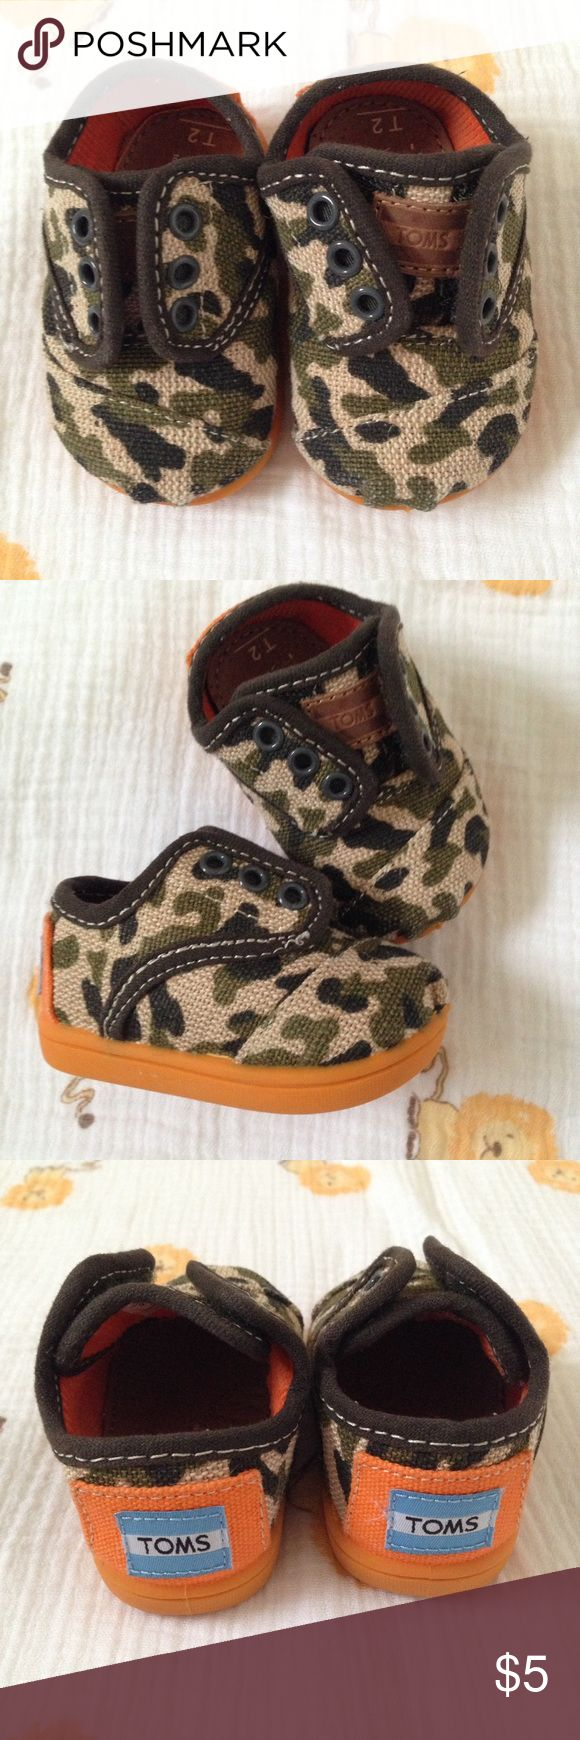 Camo TOMS Shoes (Baby) Fun camo shoes with orange sole detail. EUC. Rarely worn. TOMS Shoes Baby & Walker